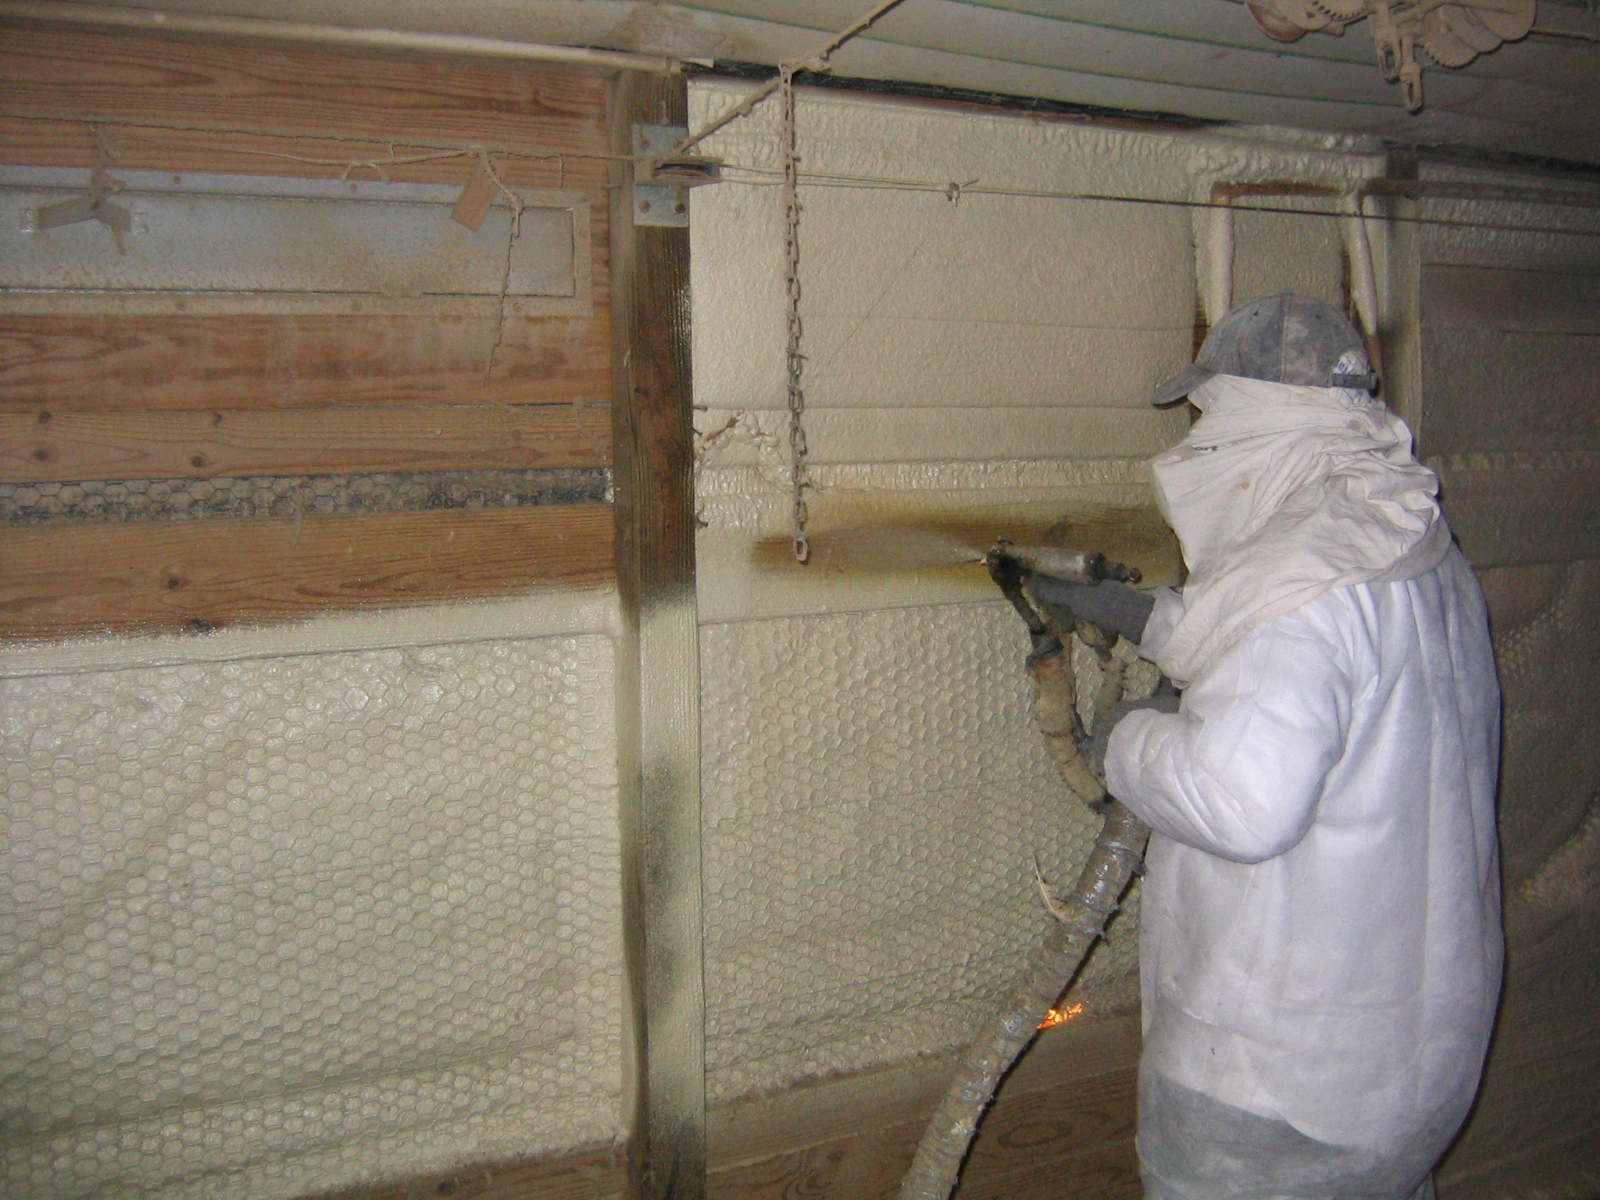 Spray Foam Insulation (Urethane)